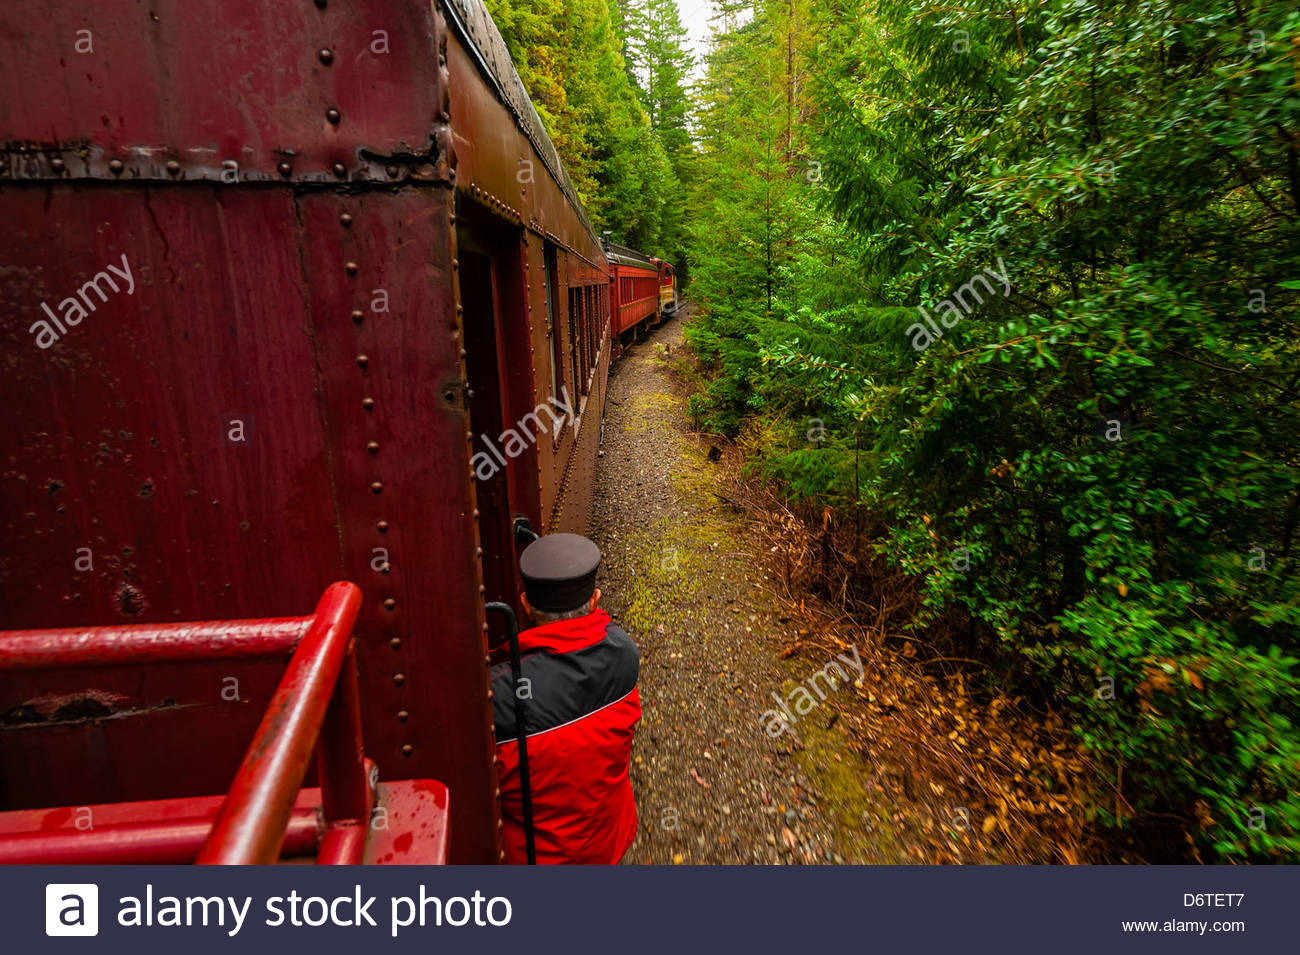 Skunk Train (tourist train) en route from Fort Bragg to Willits, Mendocino County, California USA - Stock Image